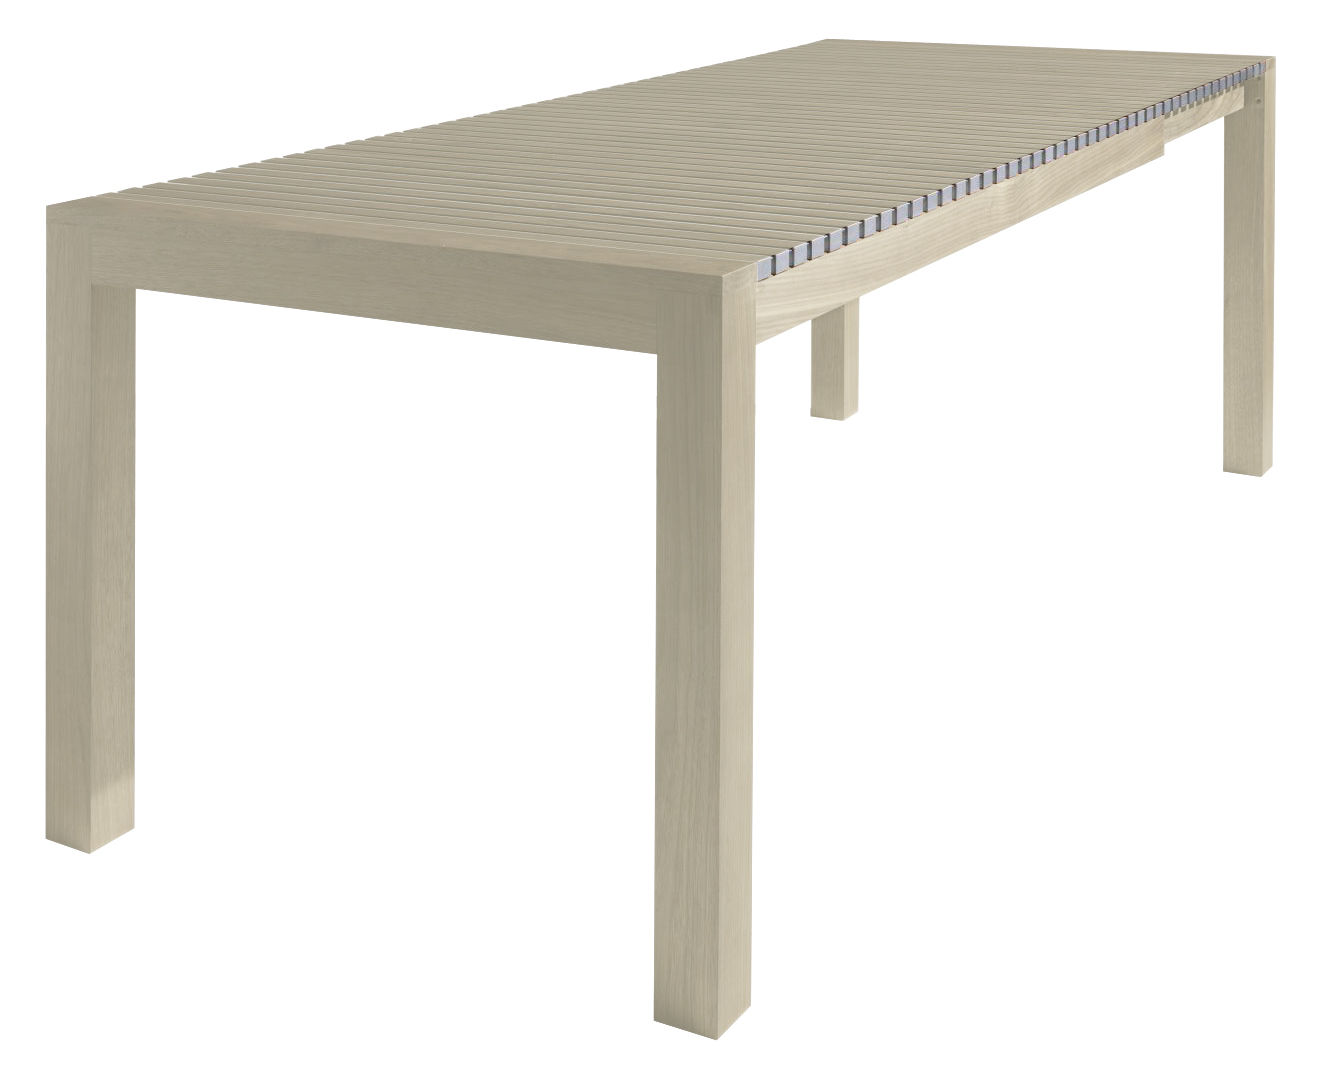 Furniture - Dining Tables - Astor Extending table - L 150 / 210 cm by Horm - Whitened beech / Aluminium - Anodized aluminium, Wood